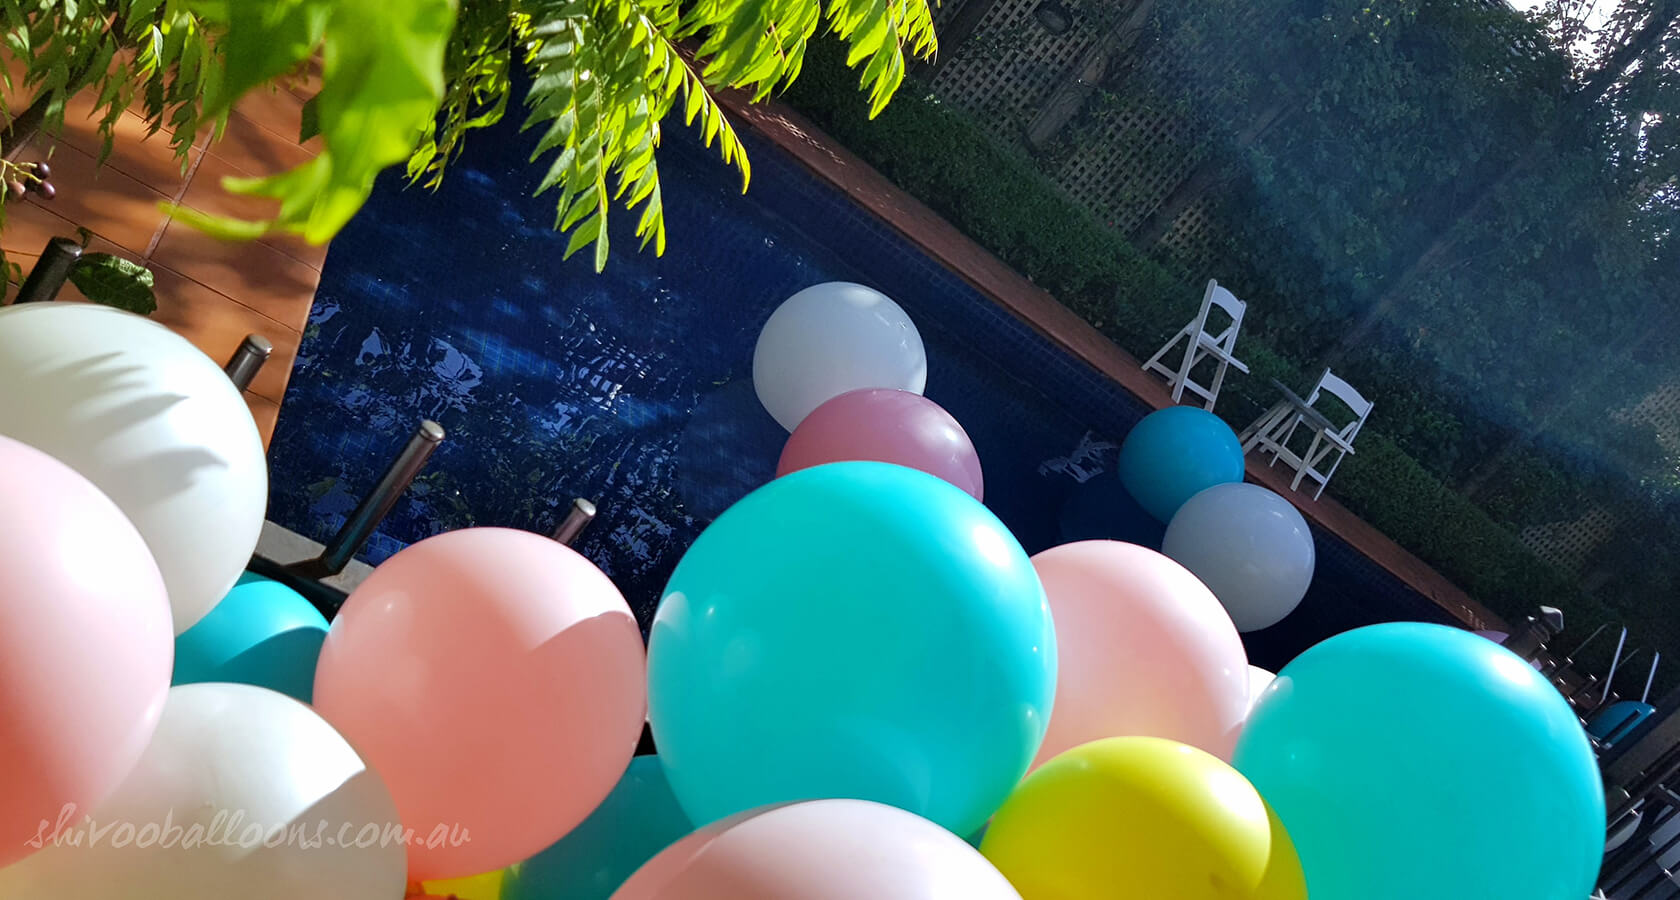 CE-53 - corporate - creating designs for events - shivoo balloons and decor specialists in coburg north